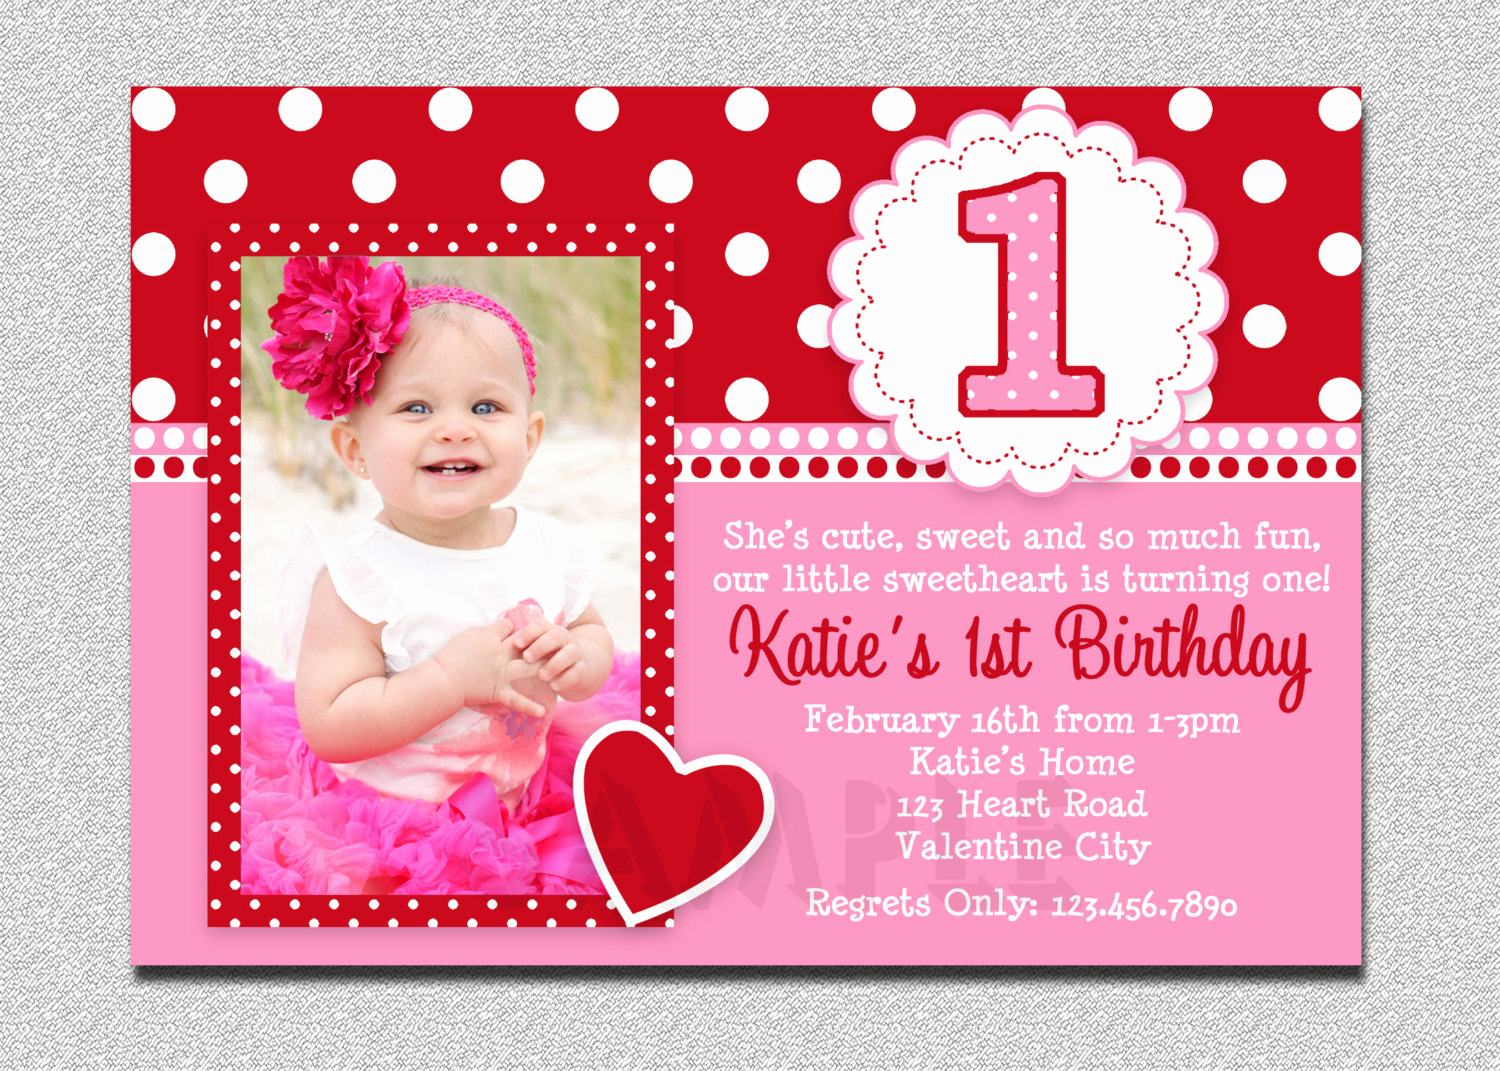 Baby Girl First Birthday Invitation Elegant Free Printable 1st Birthday Invitations Girl – Free